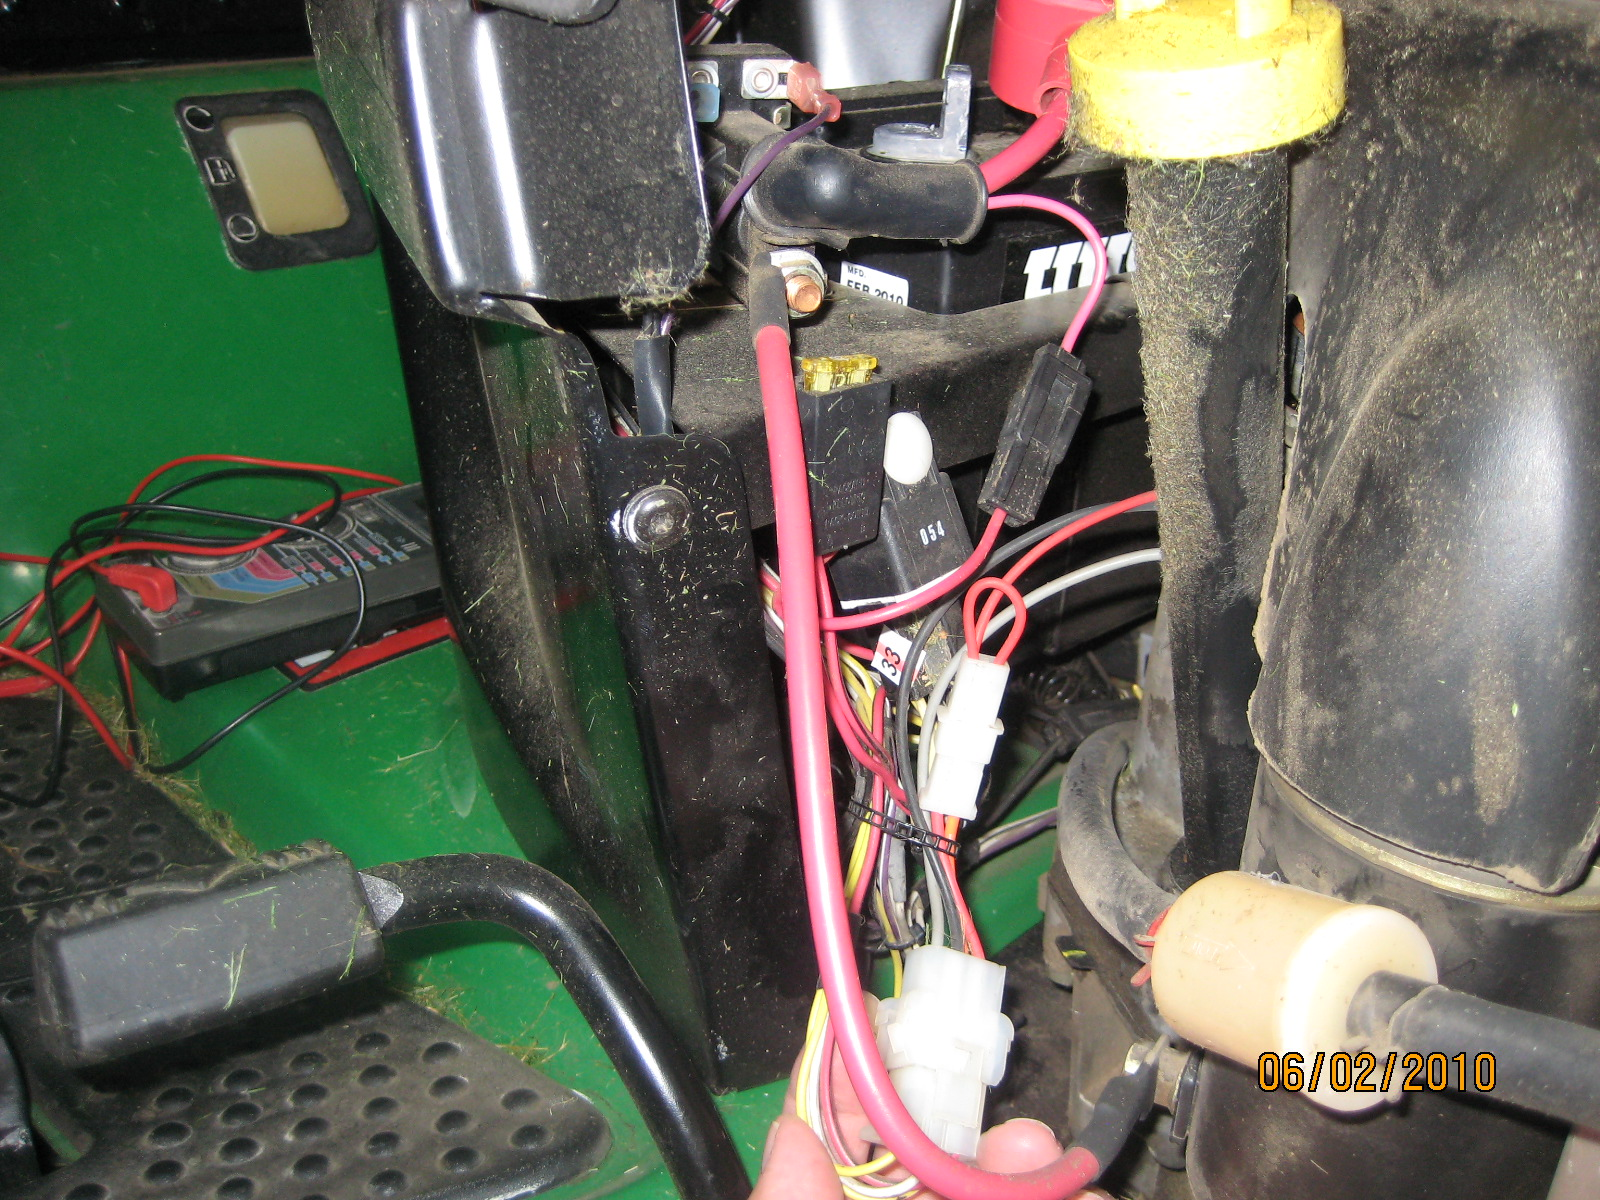 John Deere Ignition Wiring Diagram Together With John Deere 265 Wiring